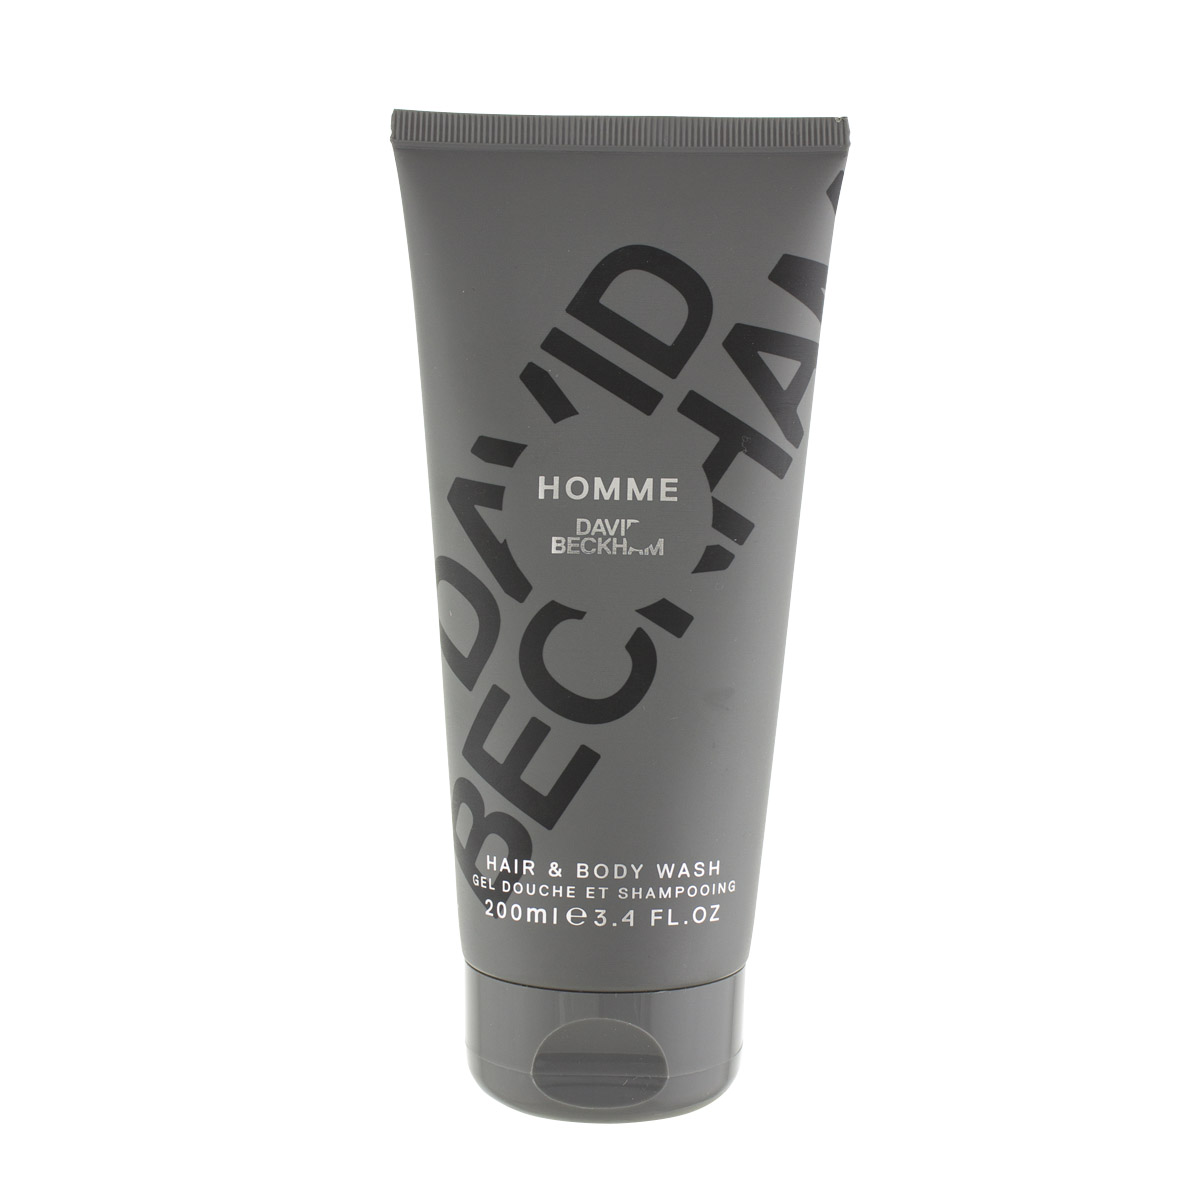 David Beckham Homme SG 200 ml M